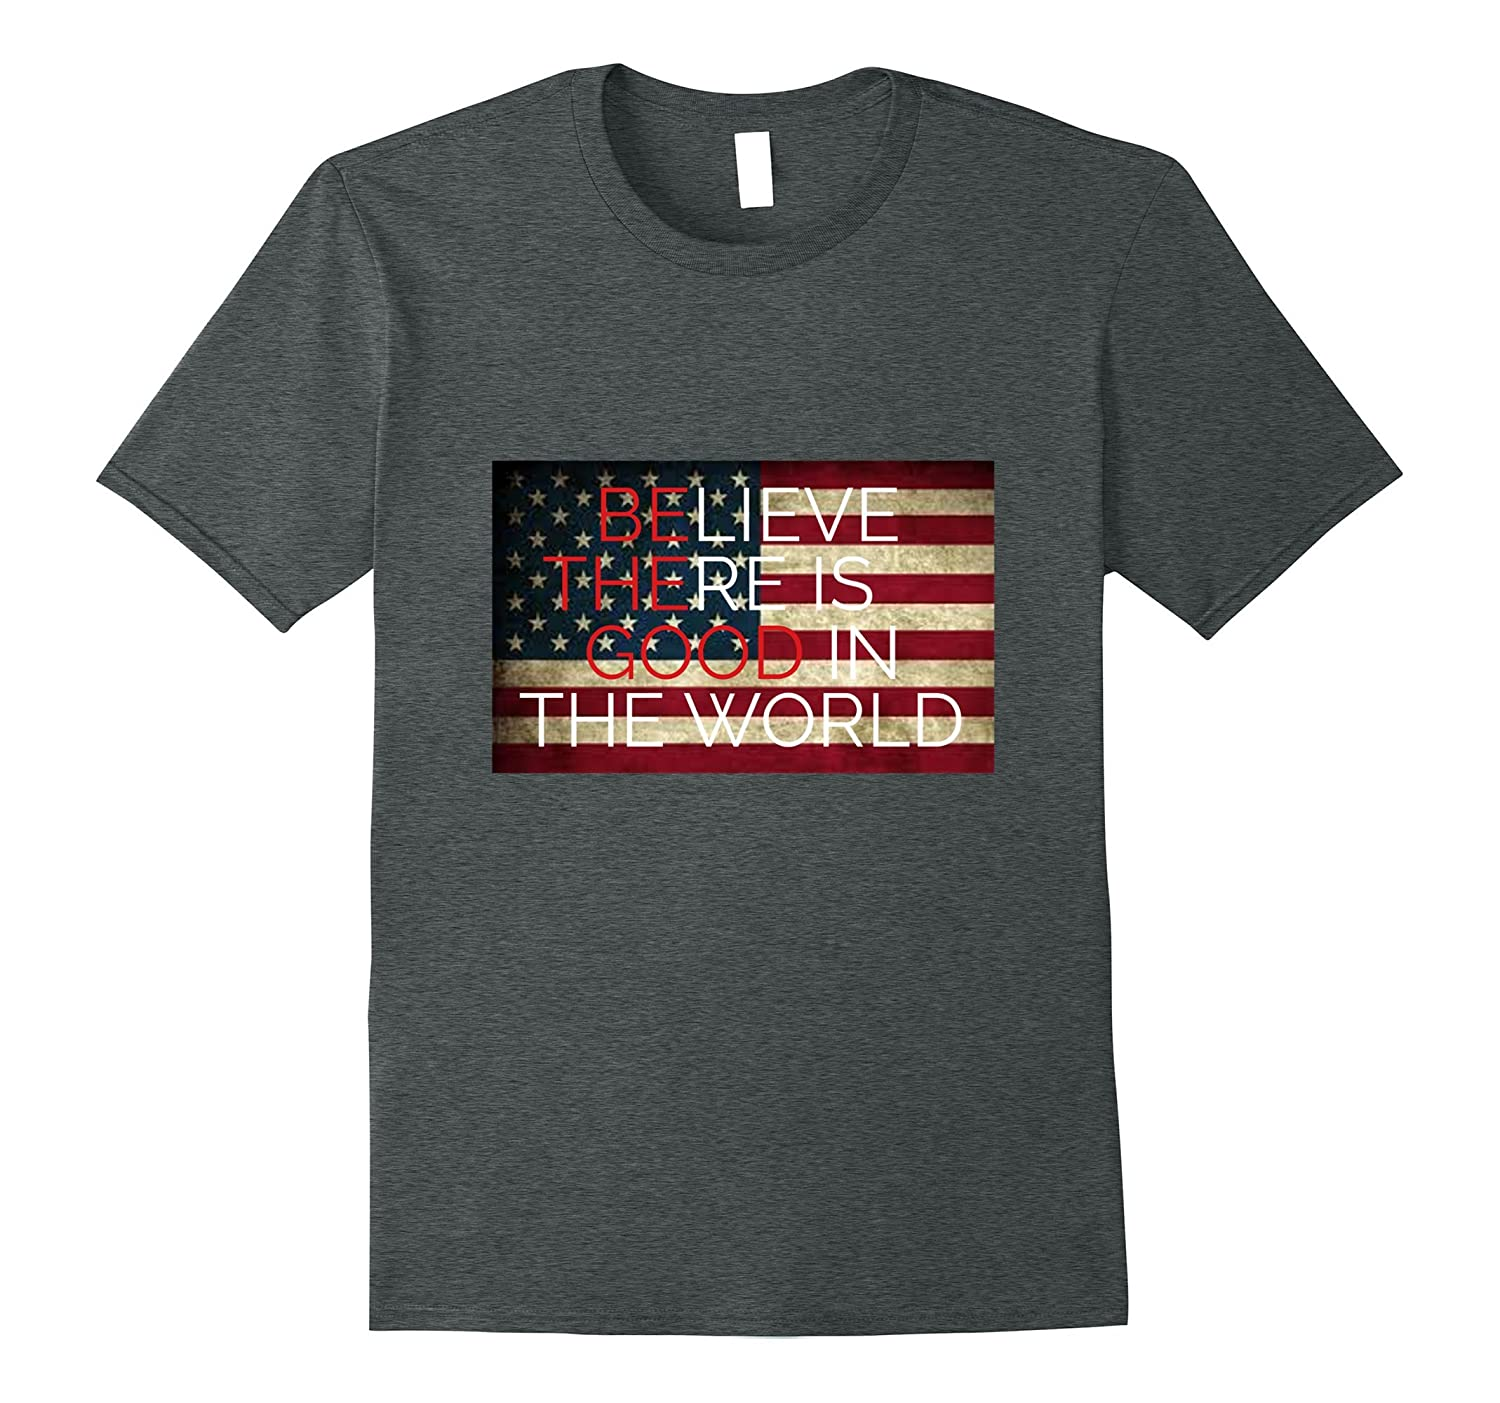 Believe There Is Good In The World USA Great Again T-shirt